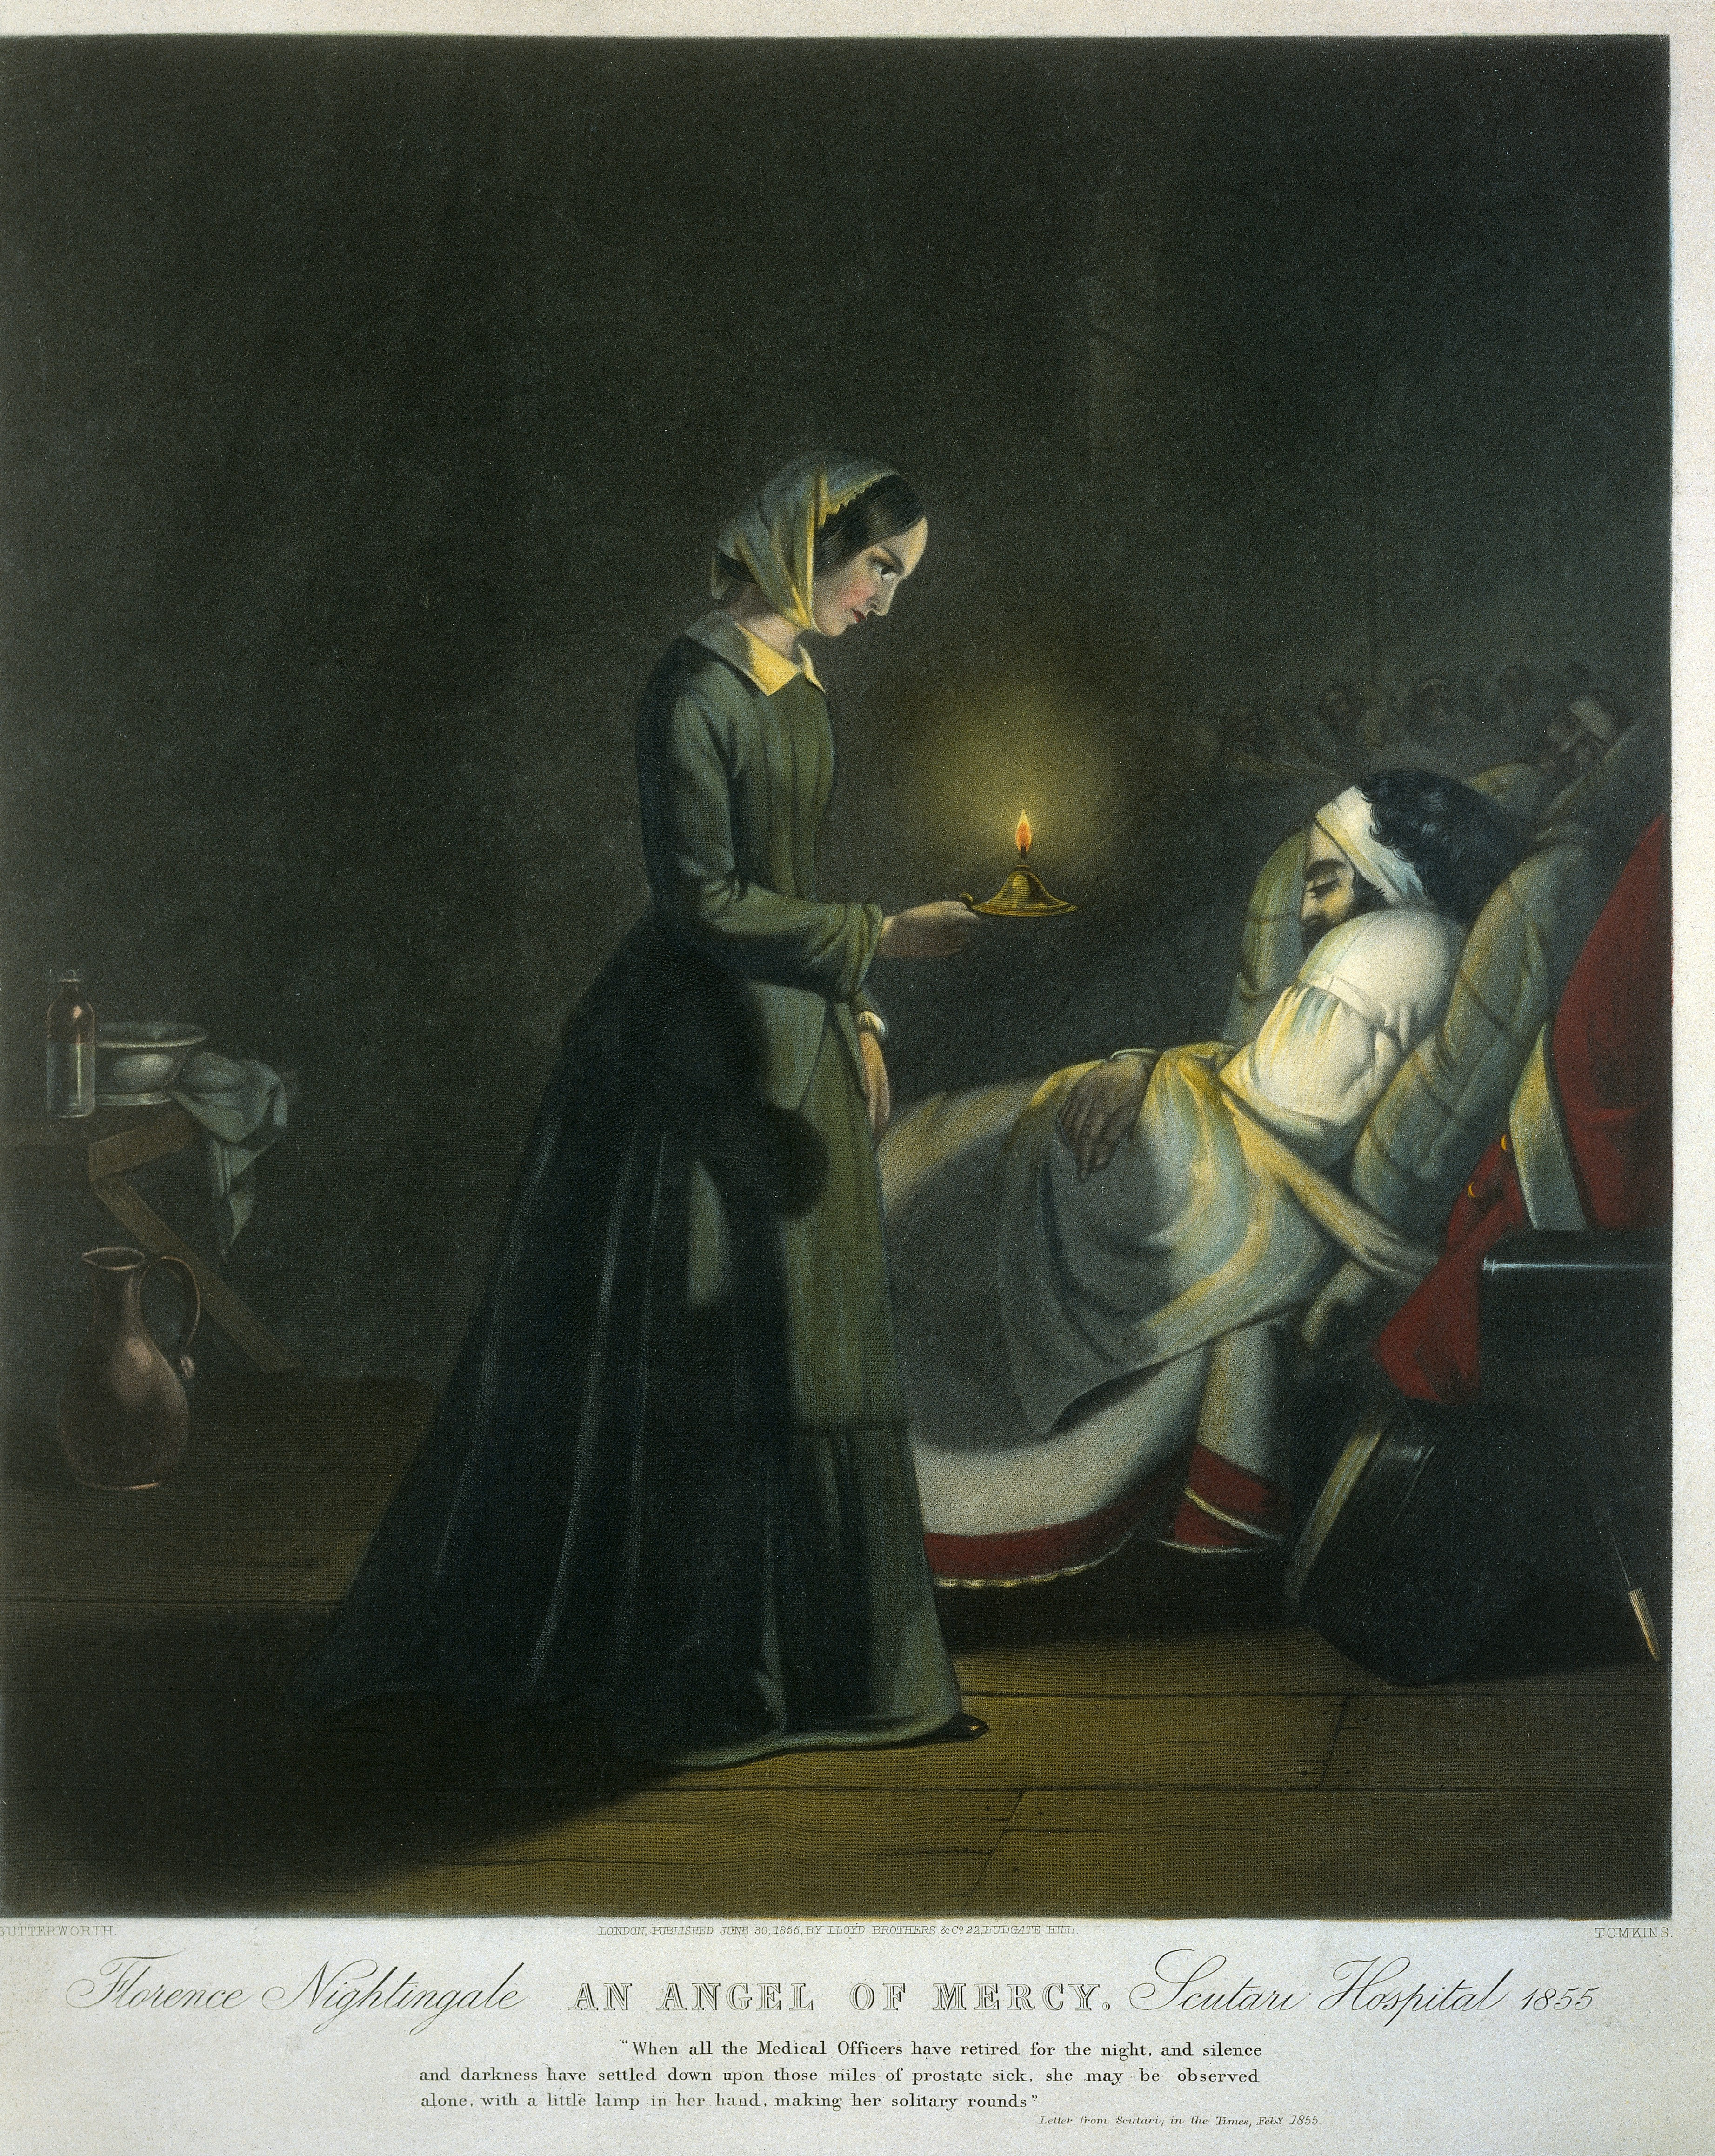 Florence Nightingale, an angel of mercy, with her candle making the night round of the wards at Scutari hospital, Ottoman Empire, during the Crimean War. Colored mezzotint, c. 1855, by Tomkins after Butterworth. Lettering reads: